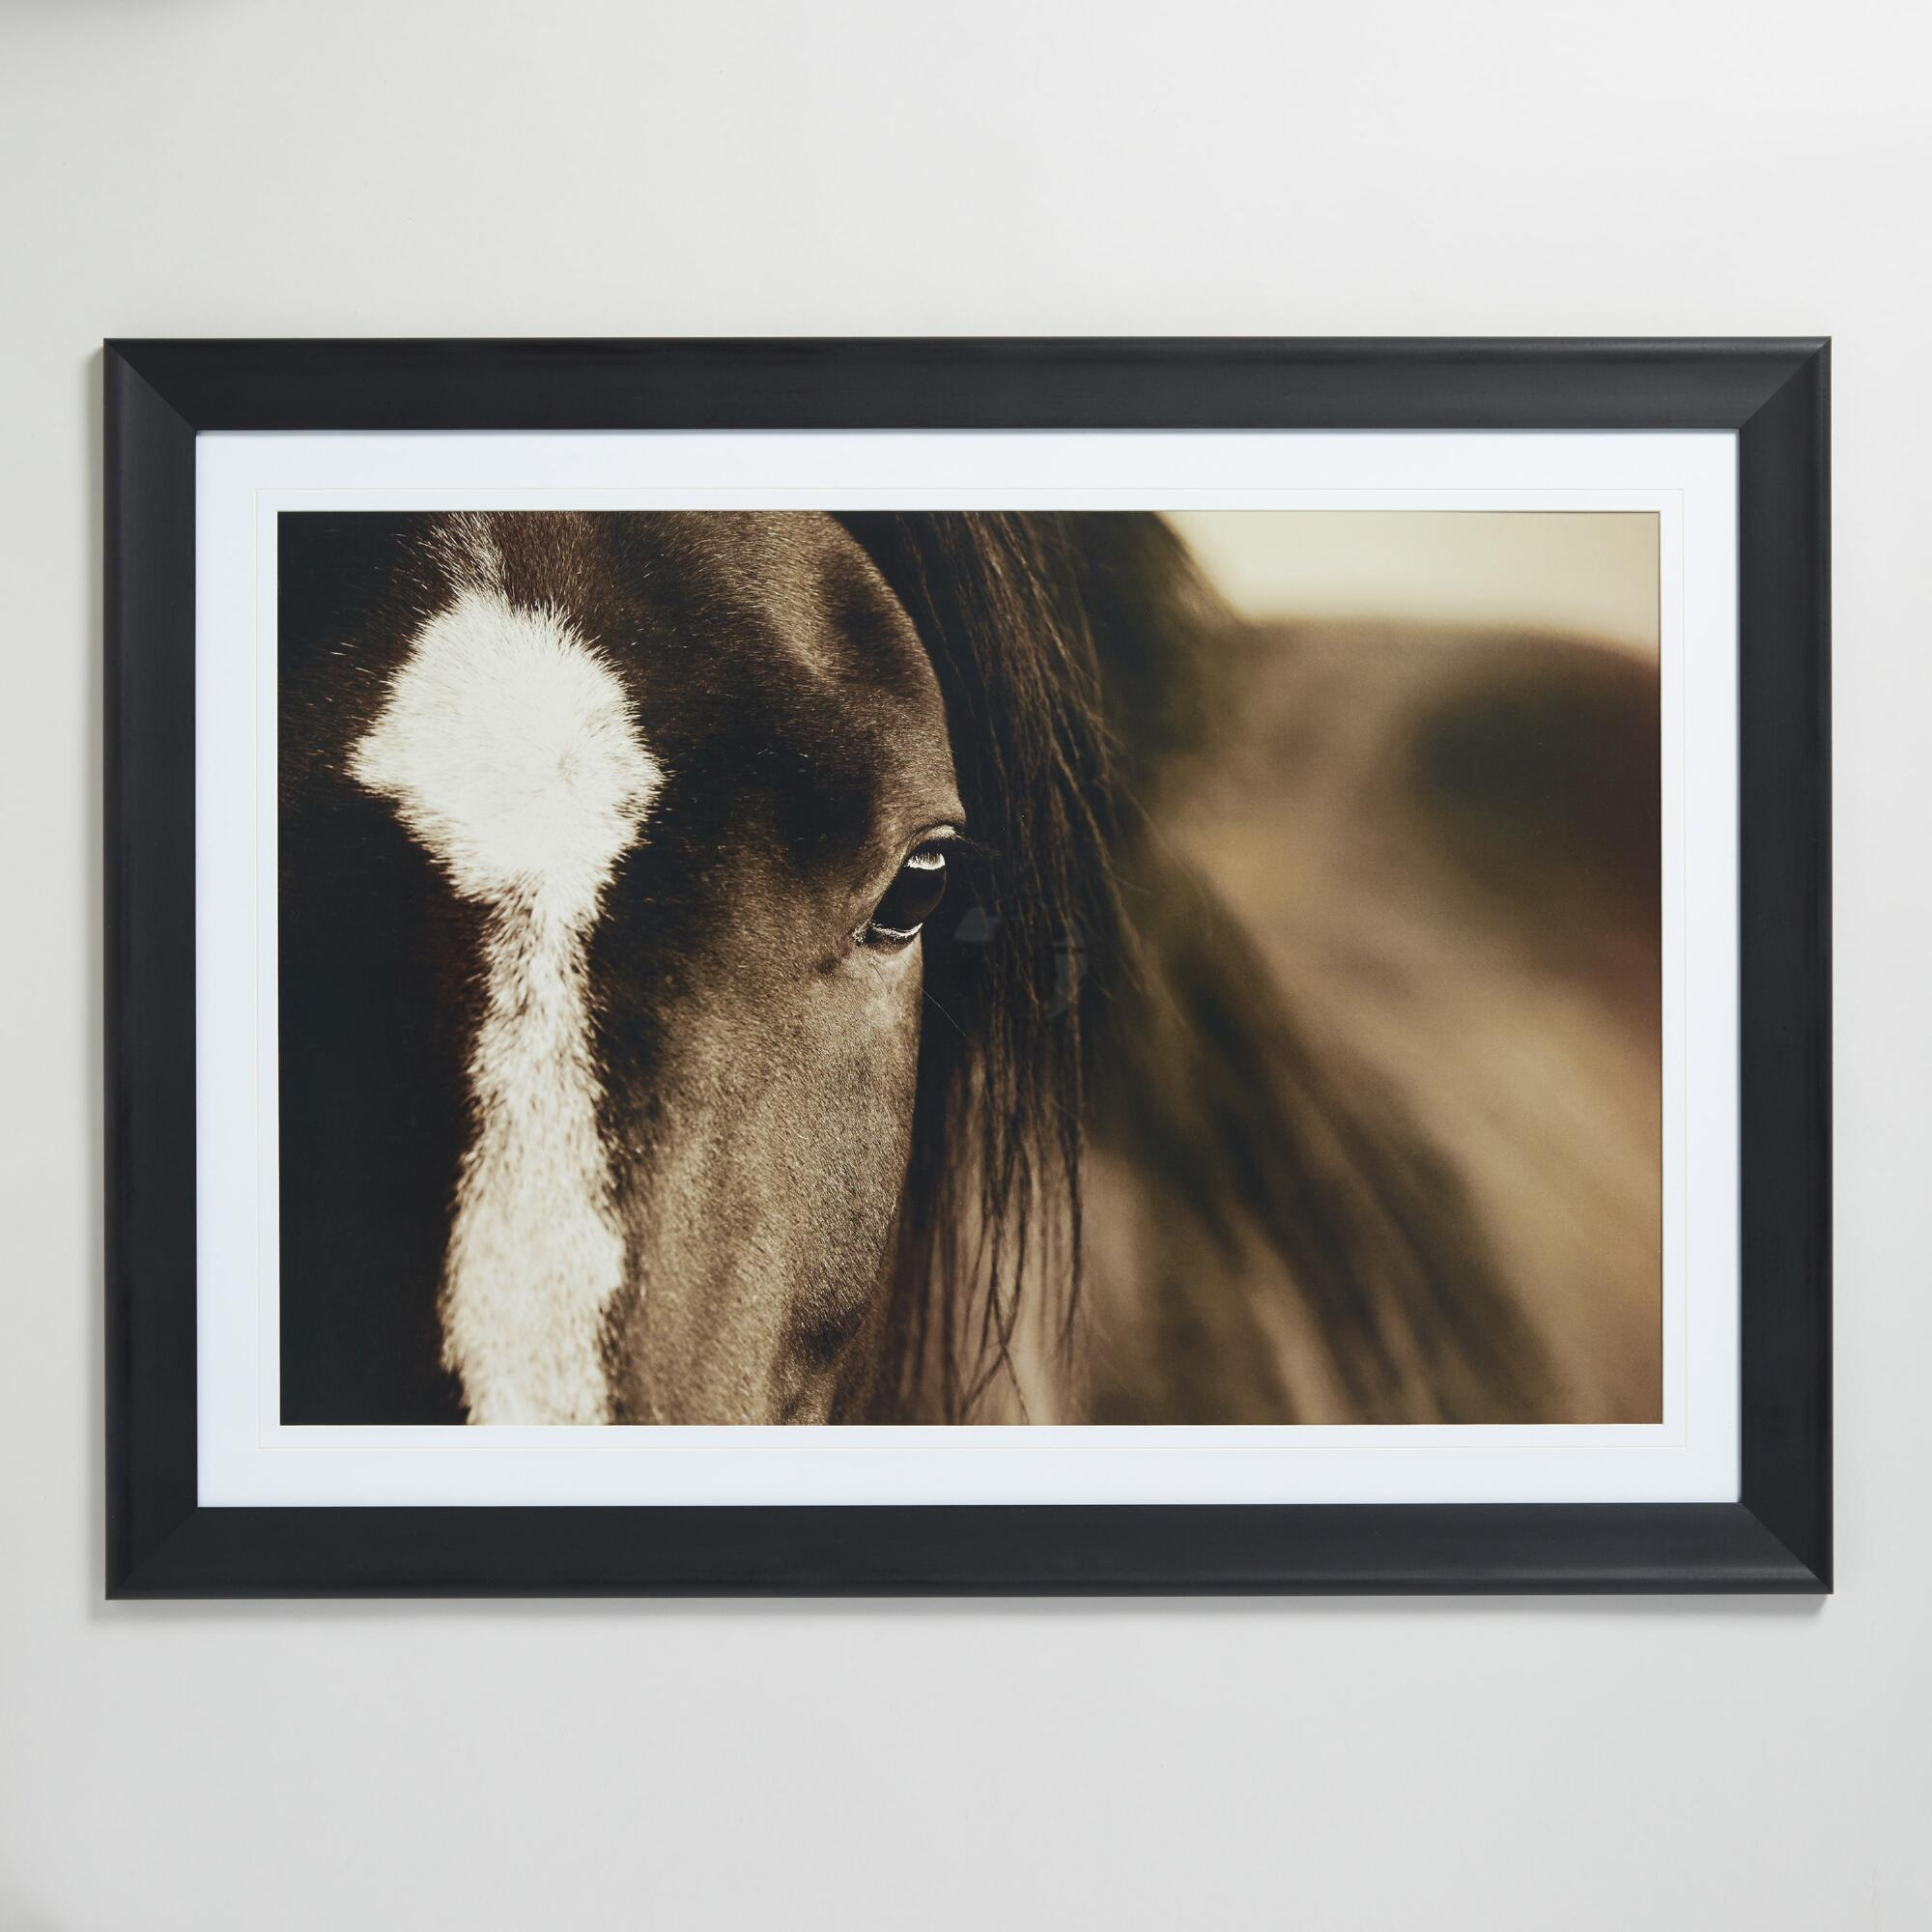 Dark Horse Eyes by Lisa Dearing with Frame: Black/Brown/White/Natural - Large by World Market